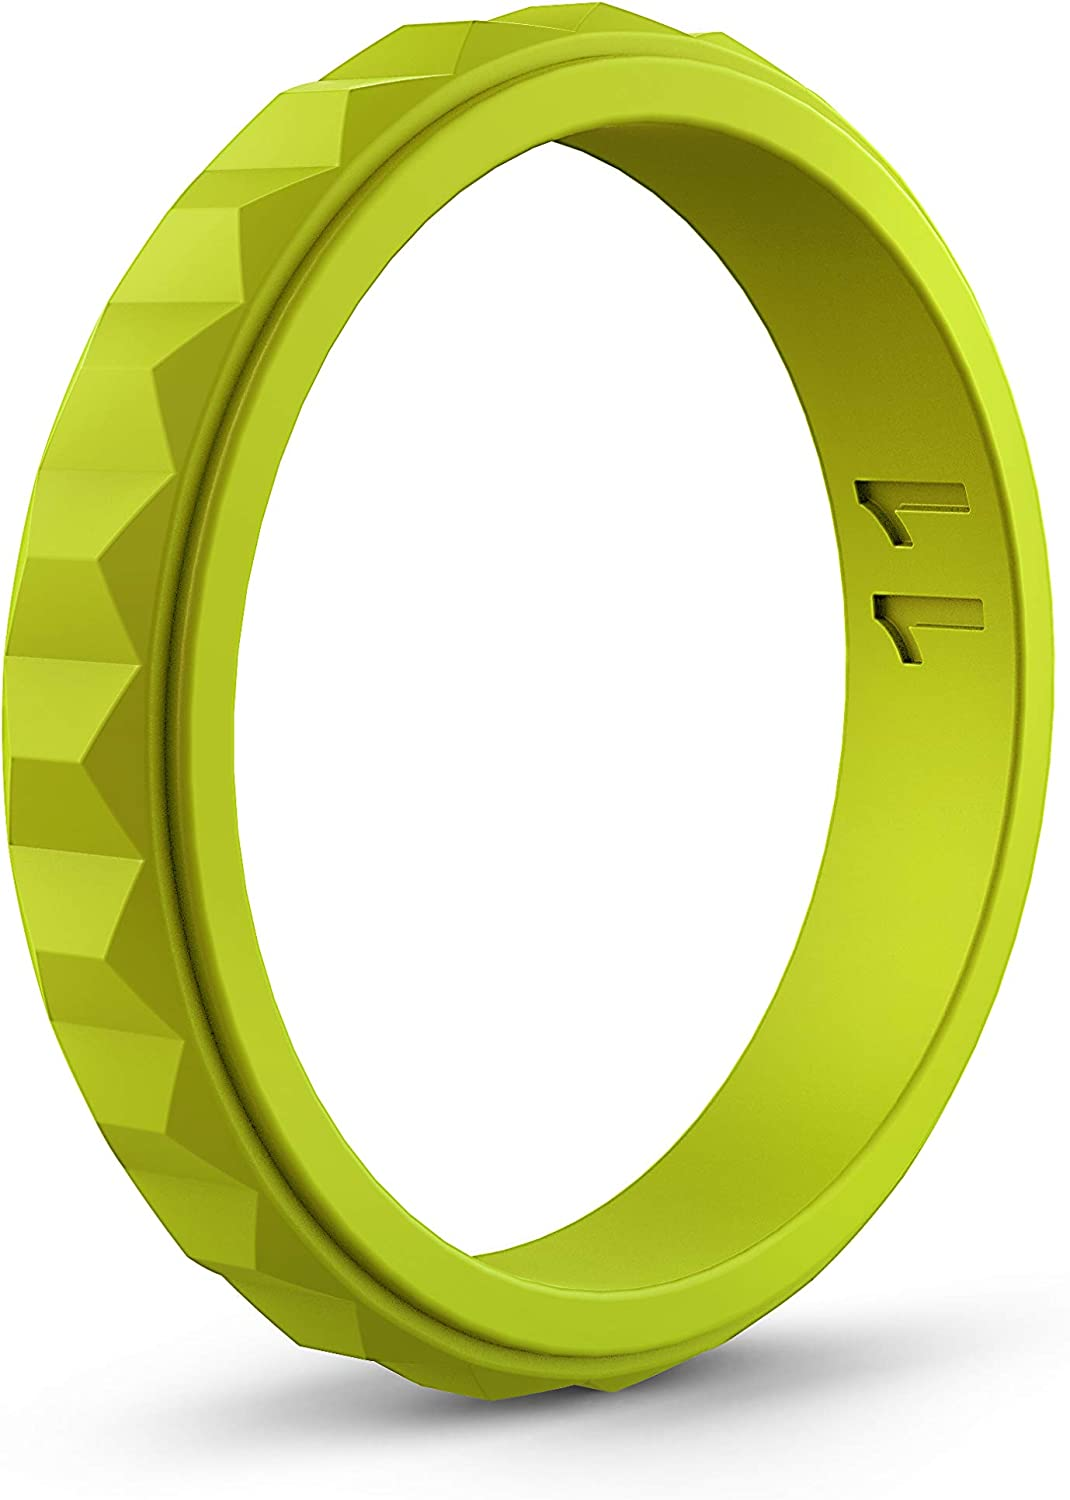 ASTERY Unique Designed Stackable Silicone Wedding Ring Bands for Women,Hypoallergenic Medical Grade Silicone,Lifetime Quality Guarantee 10 Colors//7 Size